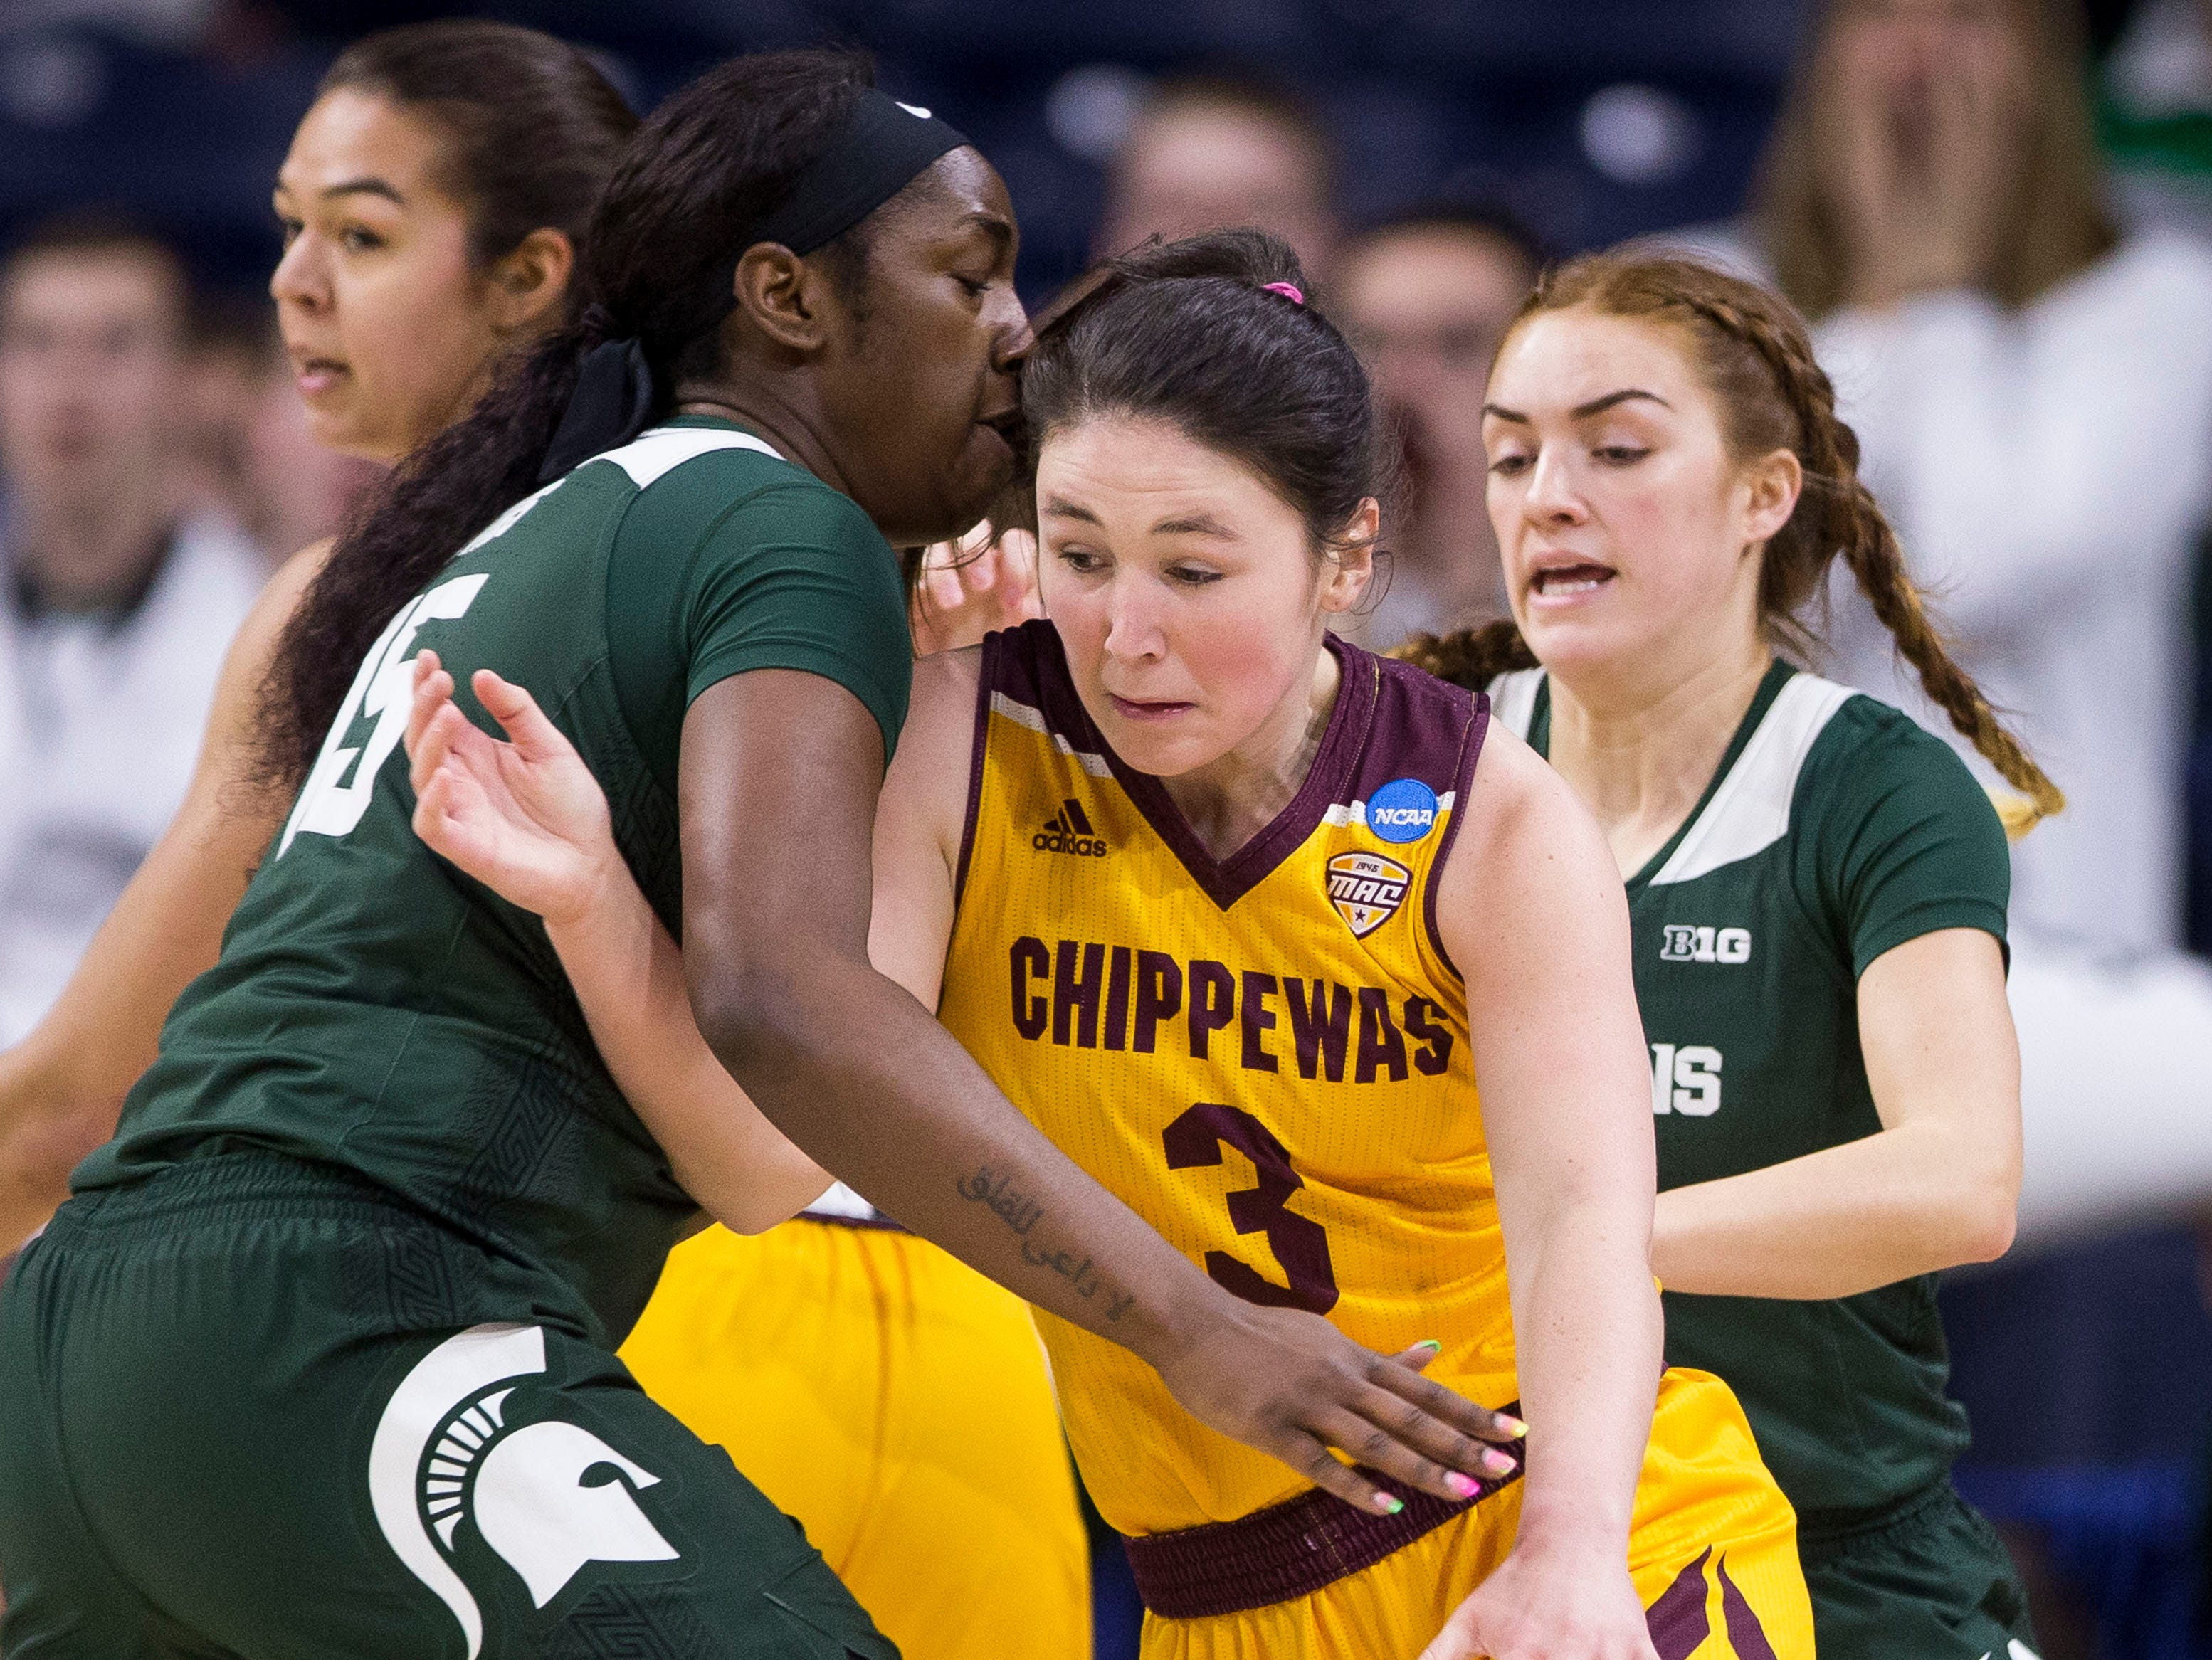 Central Michigan's Presley Hudson (3) moves between Michigan State's Victoria Gaines, left, and Taryn McCutcheon during a first-round game in the NCAA women's college basketball tournament in South Bend, Ind., Saturday, March 23, 2019.